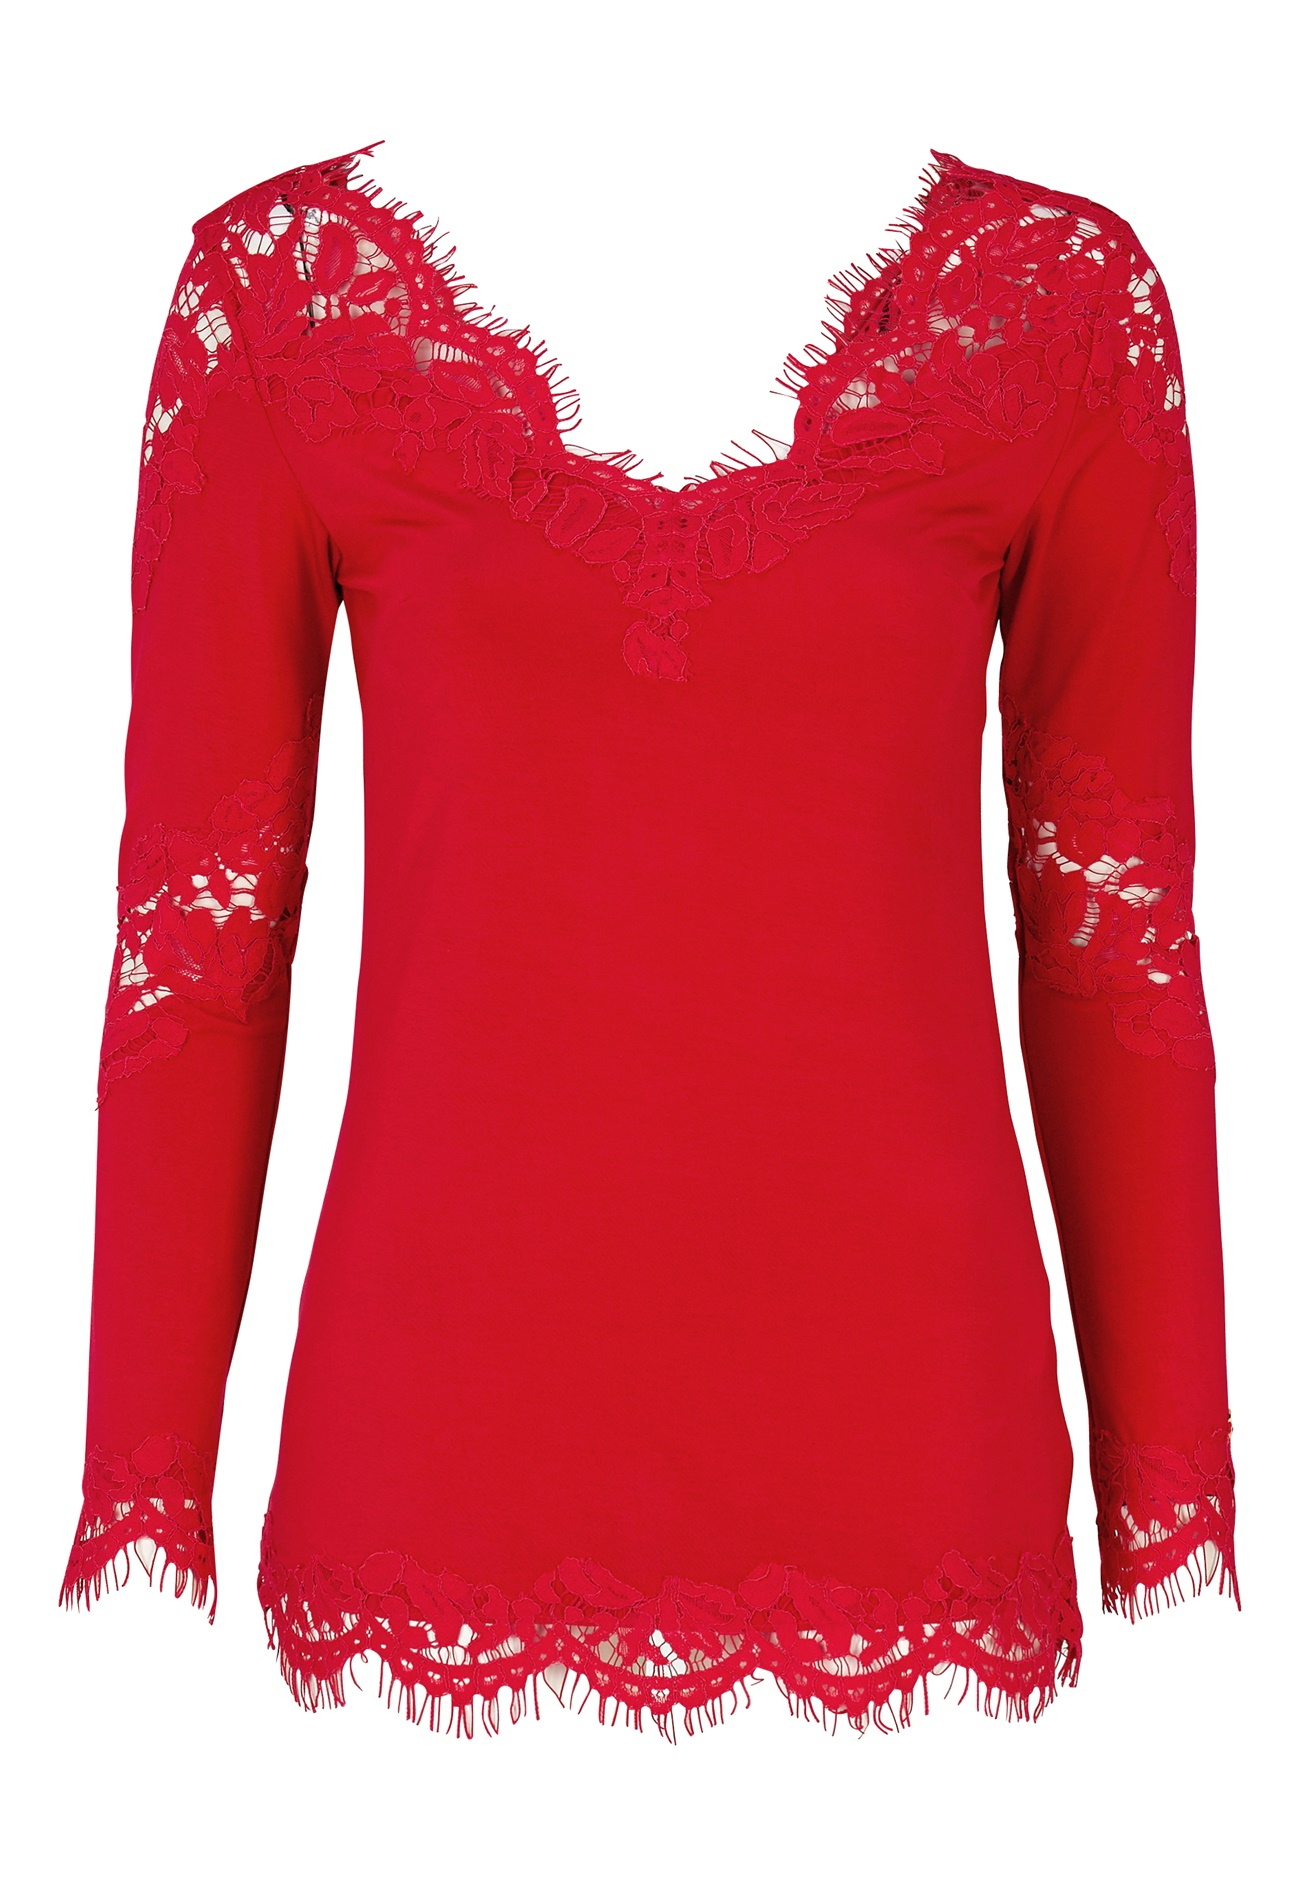 Chiara Forthi Evissu Lace Top Red - Bubbleroom